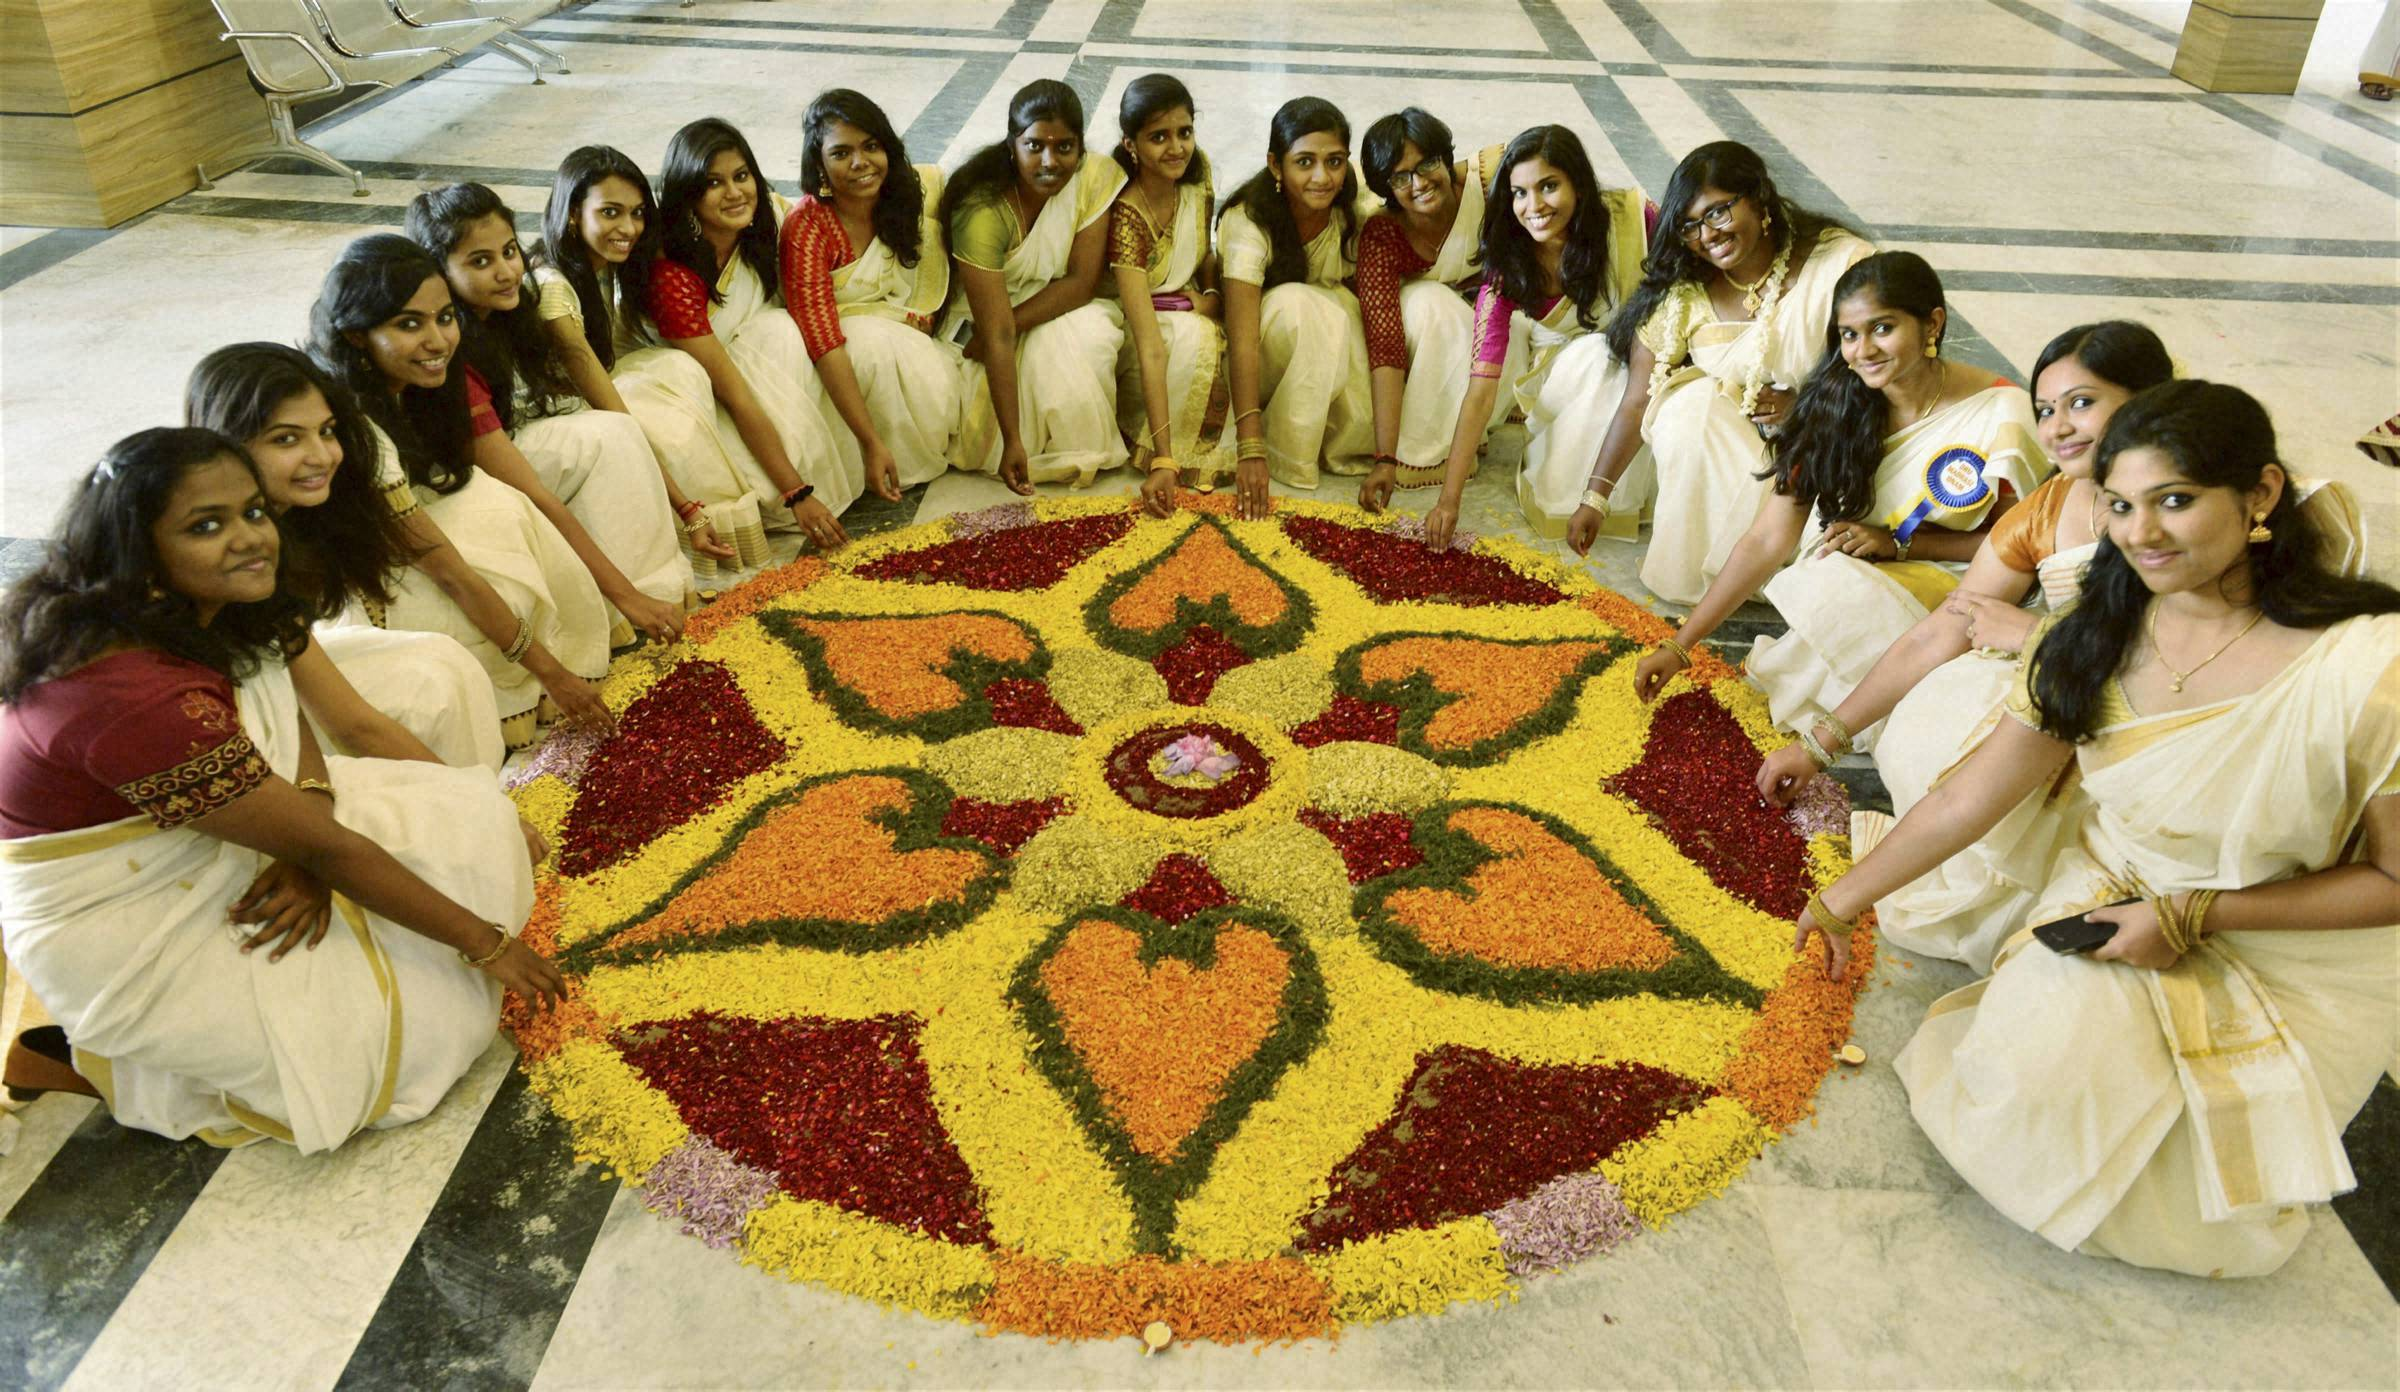 essay on onam a essay about yourself a essay about yourself dnnd  onam the vasudhaiva kutumbakam festival of business onam the vasudhaiva kutumbakam festival of